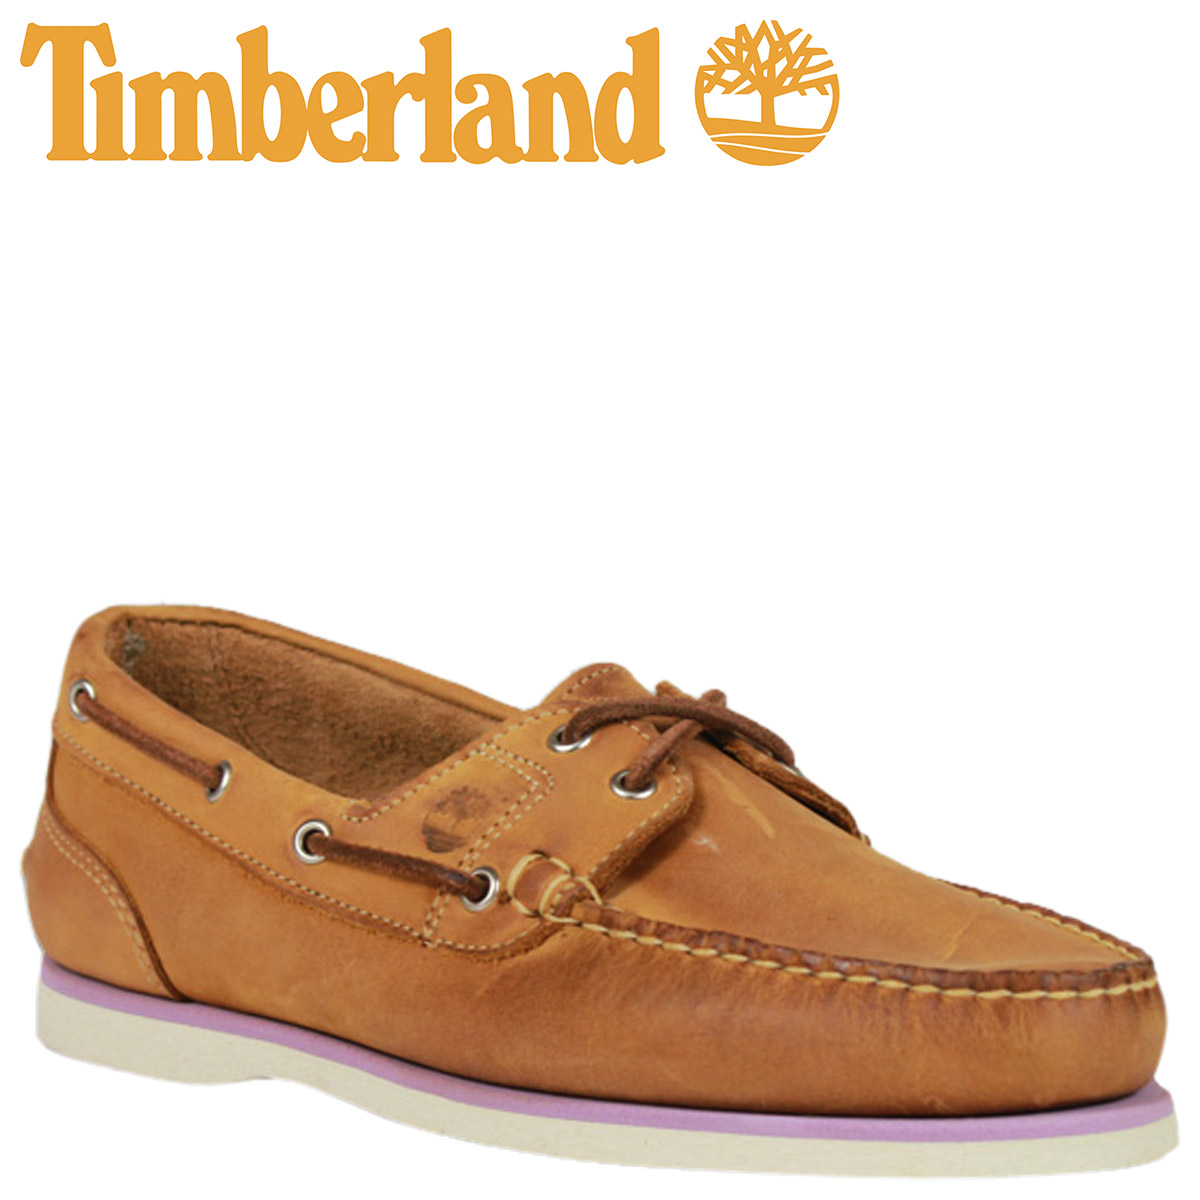 factory outlets popular brand quality Timberland Timberland classical music Amherst two eye boat shoes tongue  11645 Classic Amherst 2-Eye Boat Shoe leather men